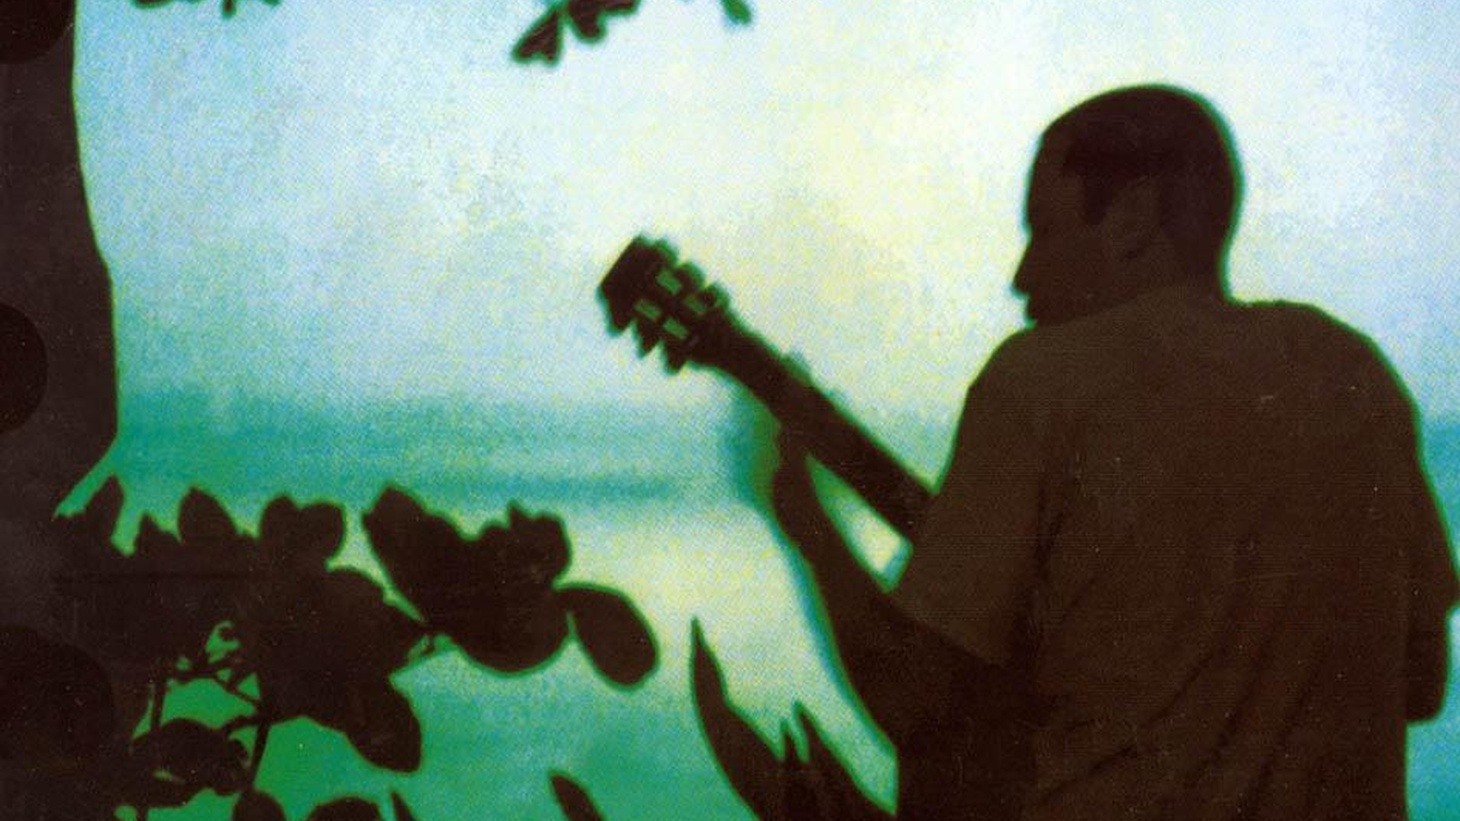 Champion surfer turned singer Jack Johnson plays his songs on his acoustic guitar for Morning Becomes Eclectic at 11:15am.Click Here to Watch.